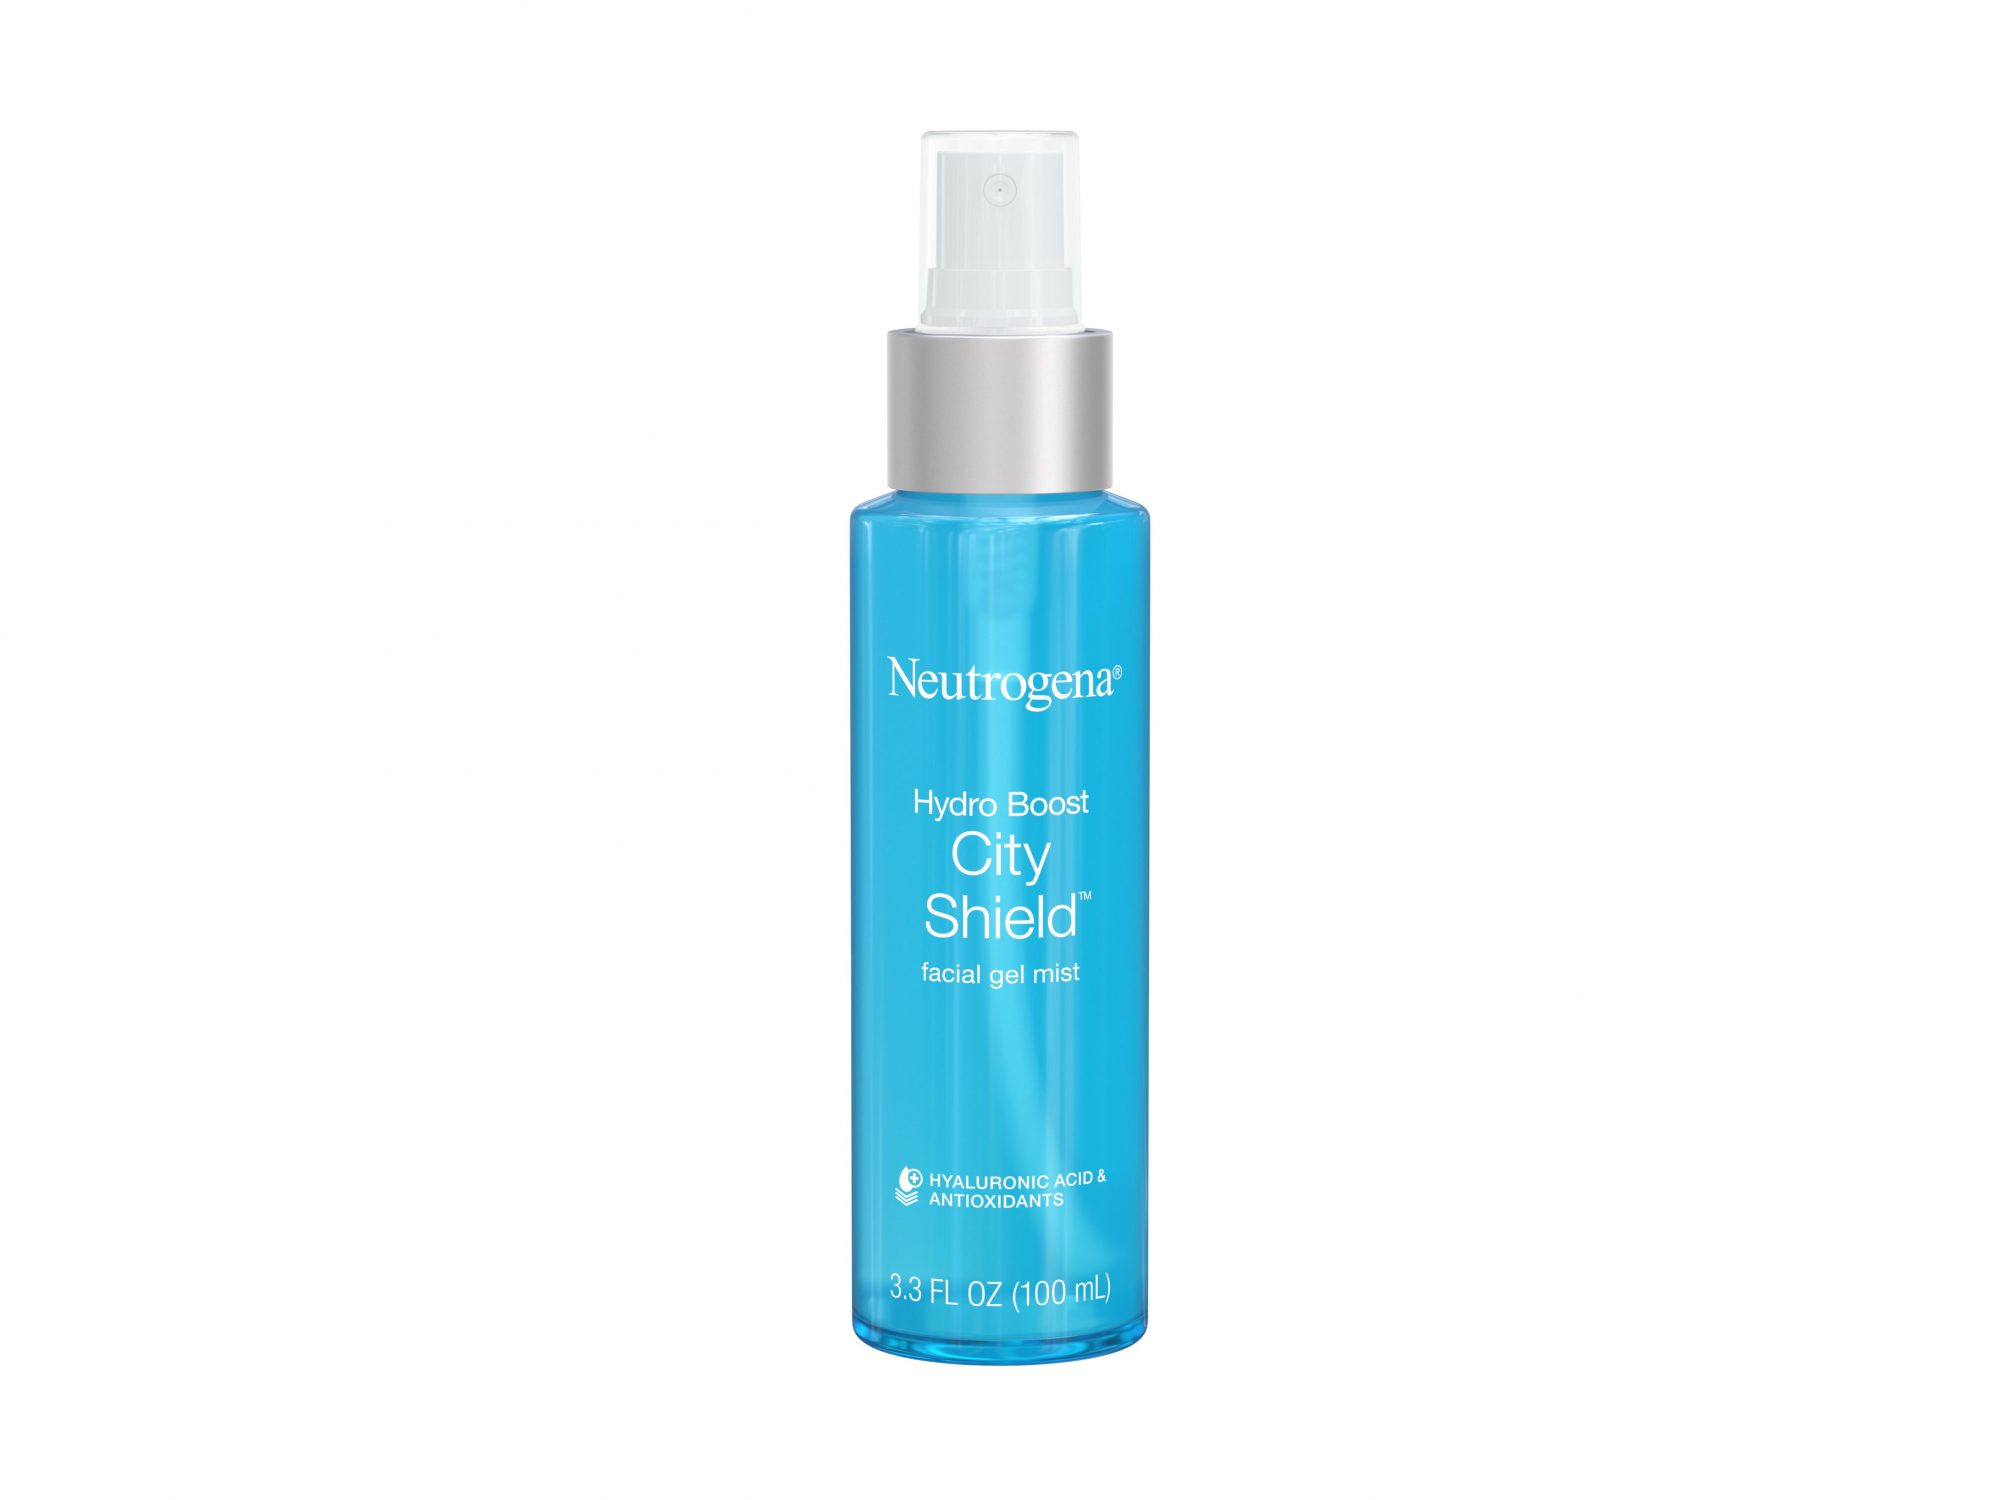 Neutrogena Hydro Boost City Shield Facial Mist Gel